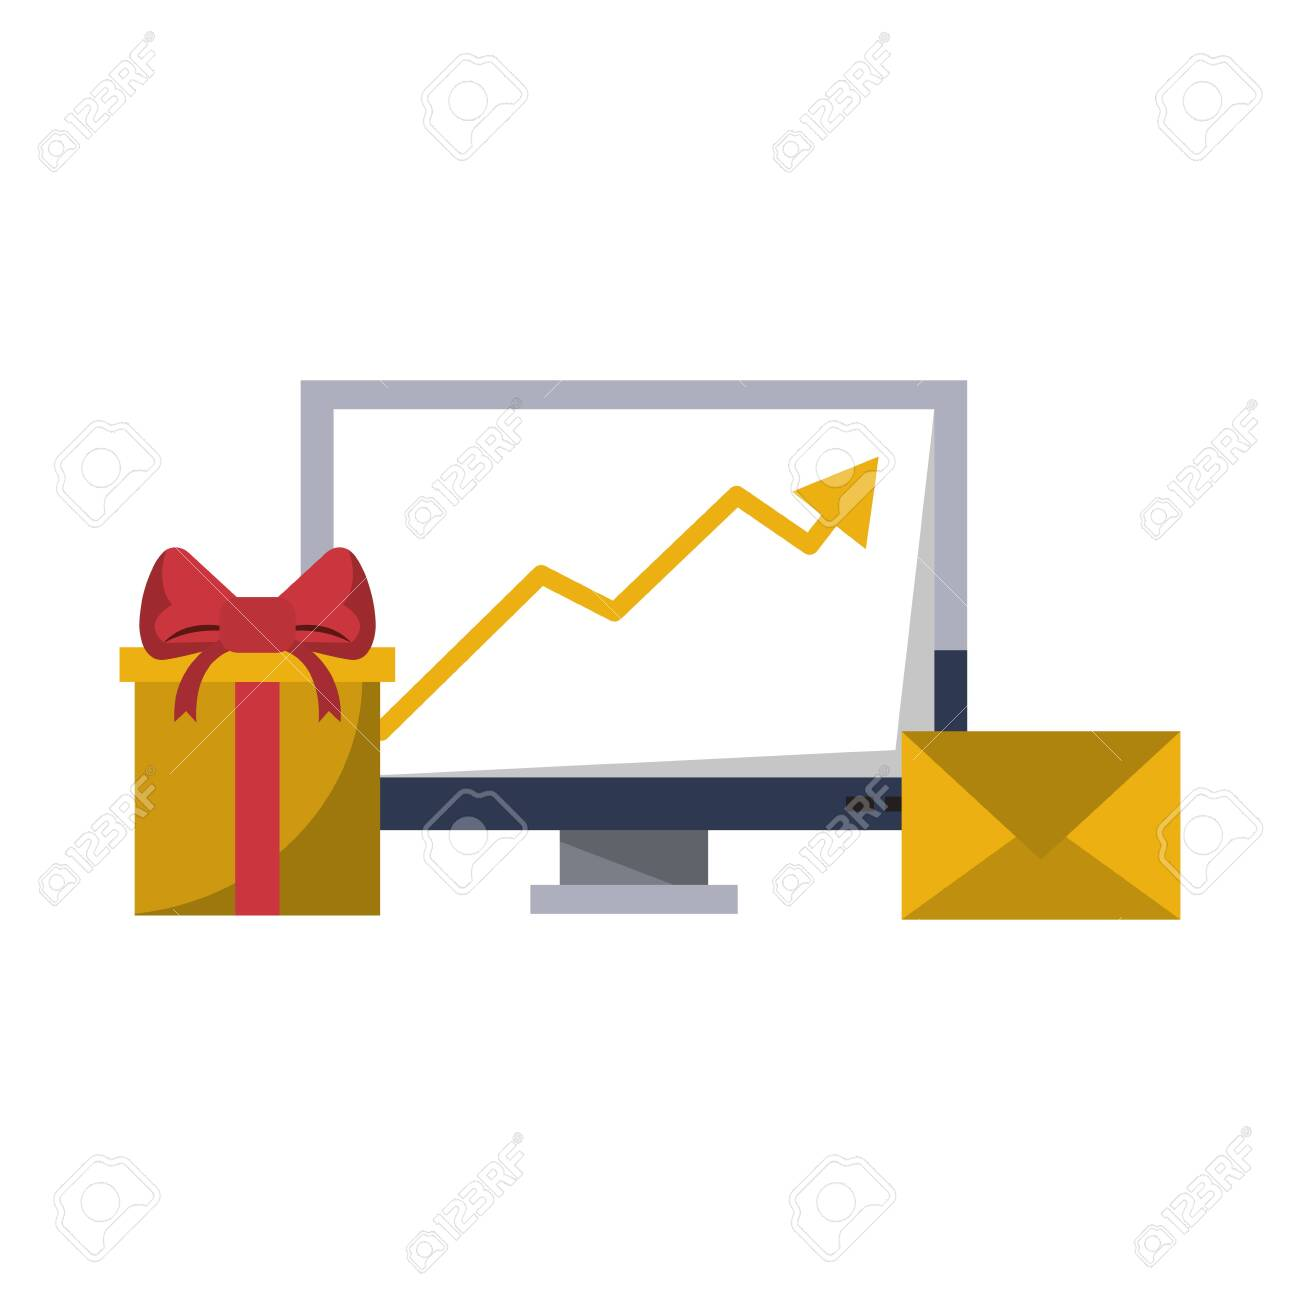 Gift delivery business tendency data logistic communication correspondance graph vector illustration graphic desing - 122472921